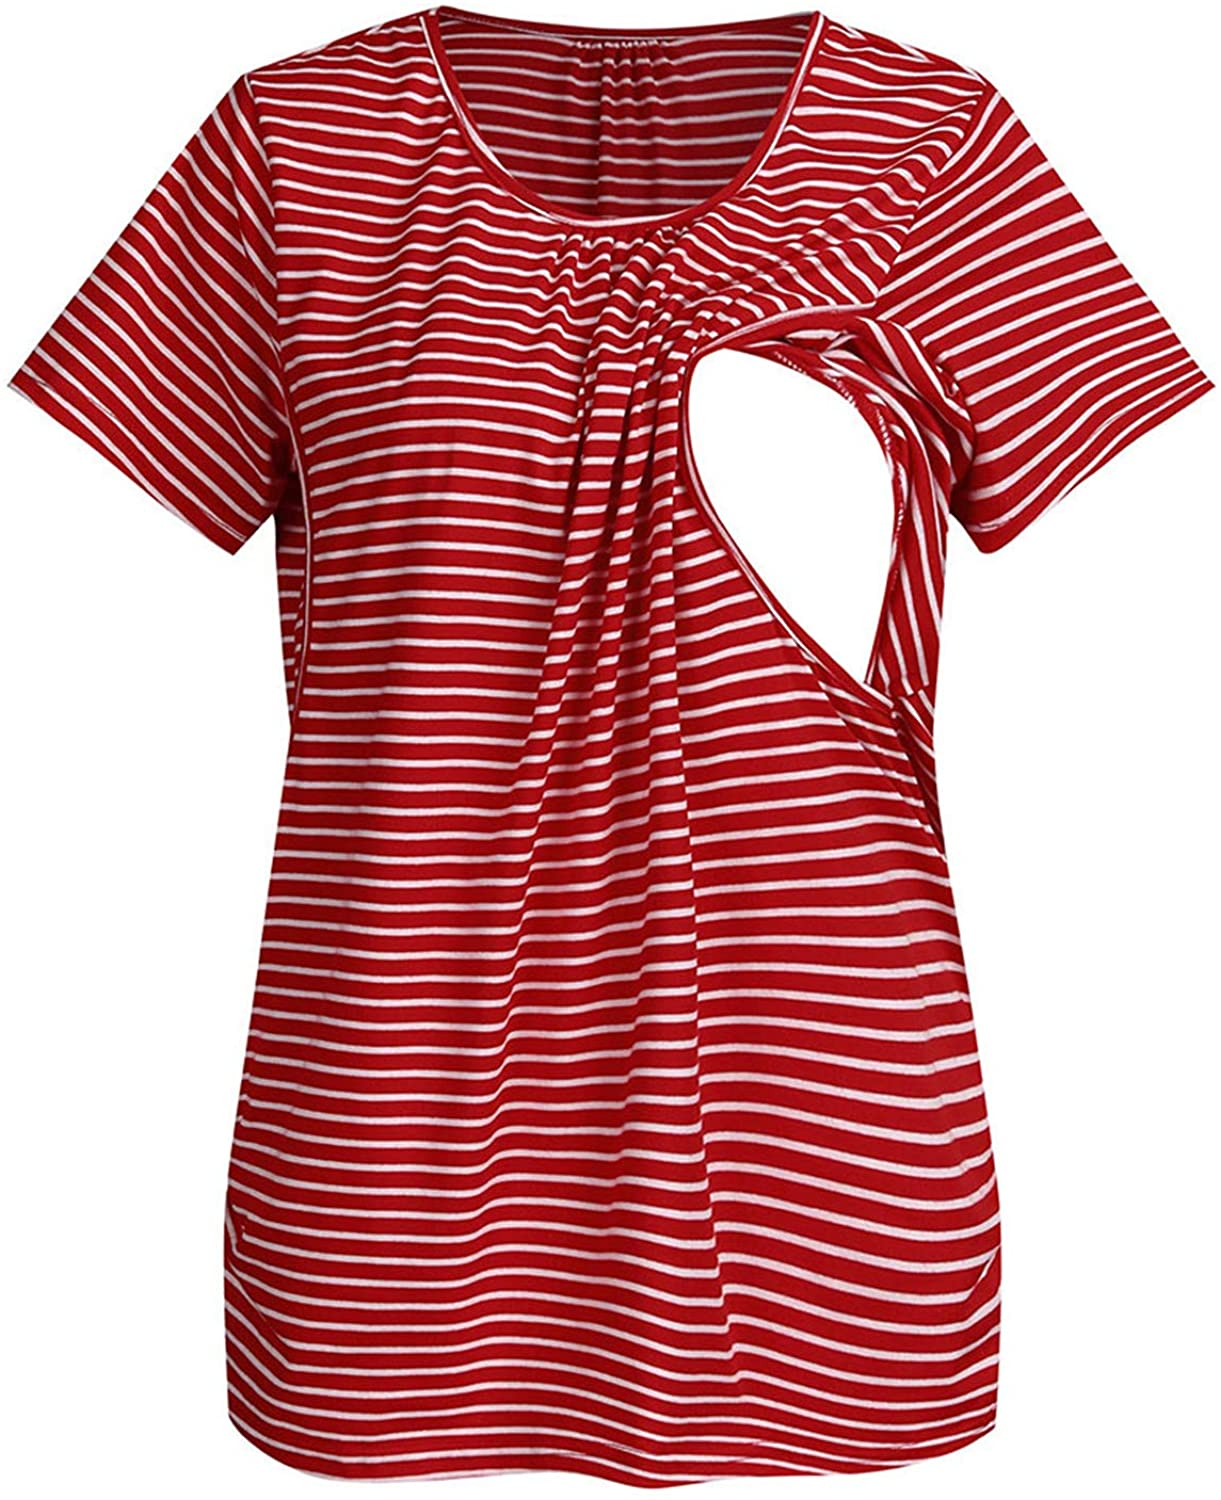 Soluo Striped Breastfeeding T-Shirt Round Neck Short Sleeve Maternity Nursing Top Clothes